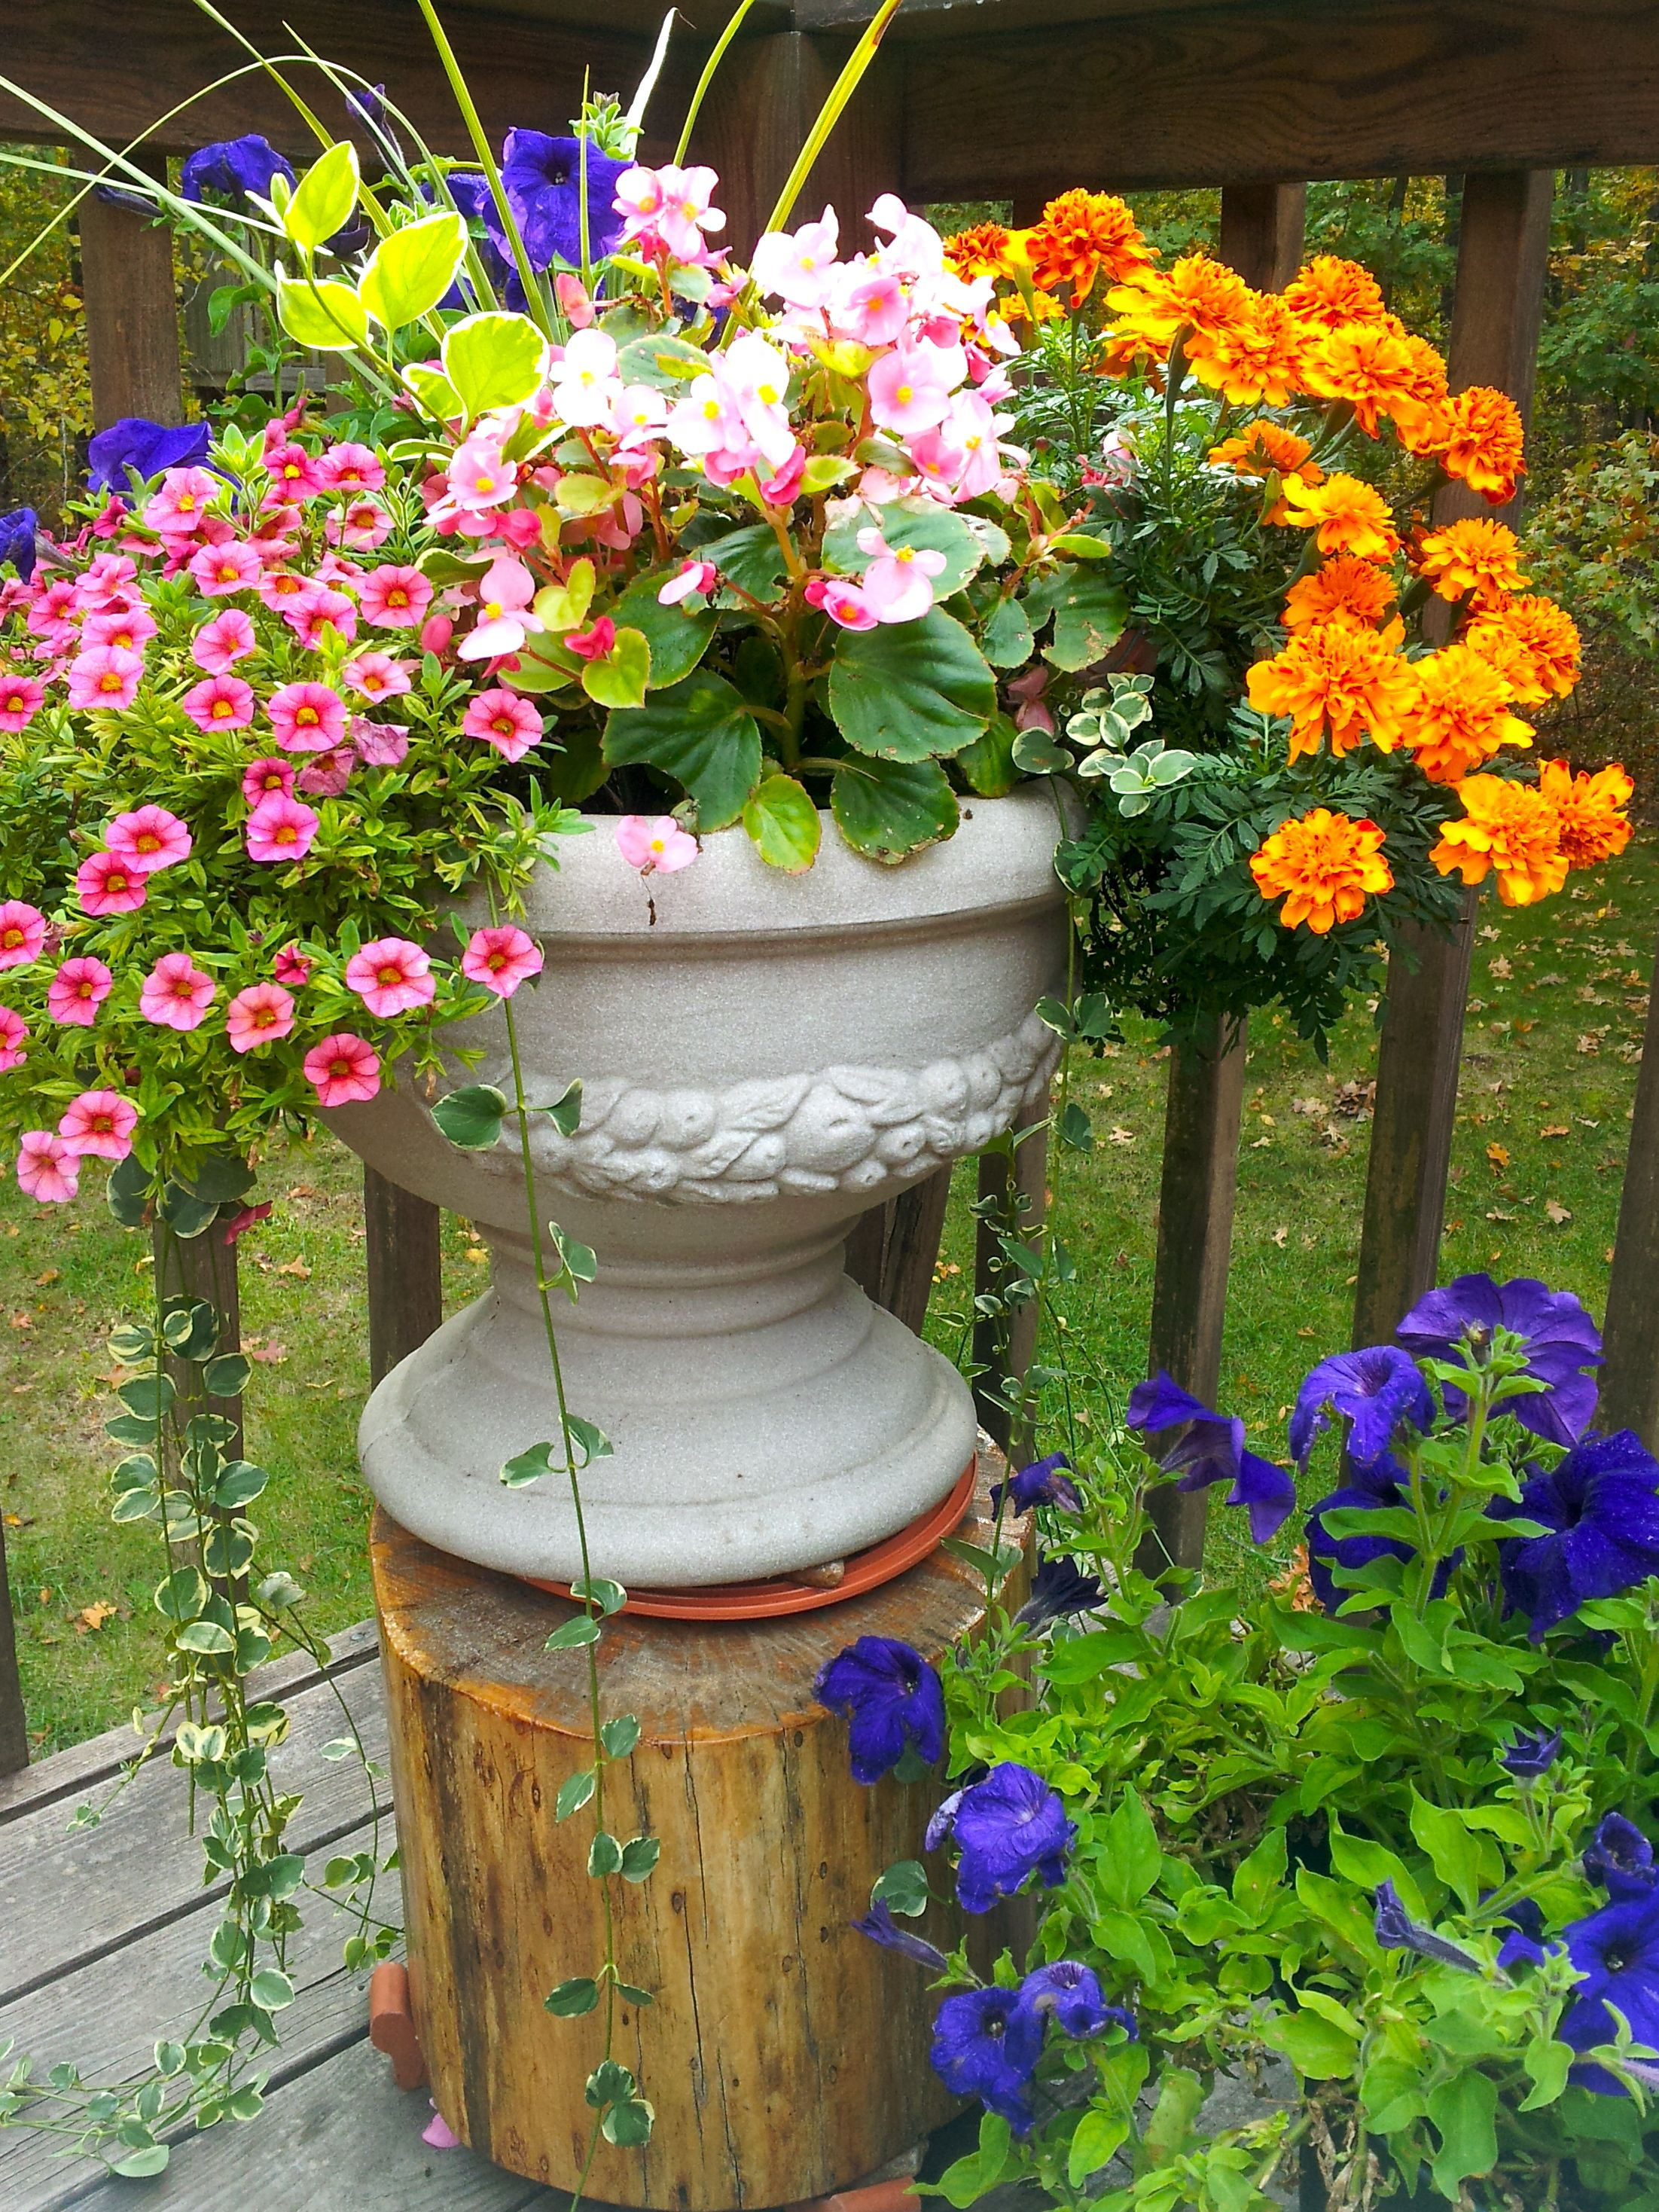 patio flowers on pinterest flower pots potted plants and petunias. Black Bedroom Furniture Sets. Home Design Ideas